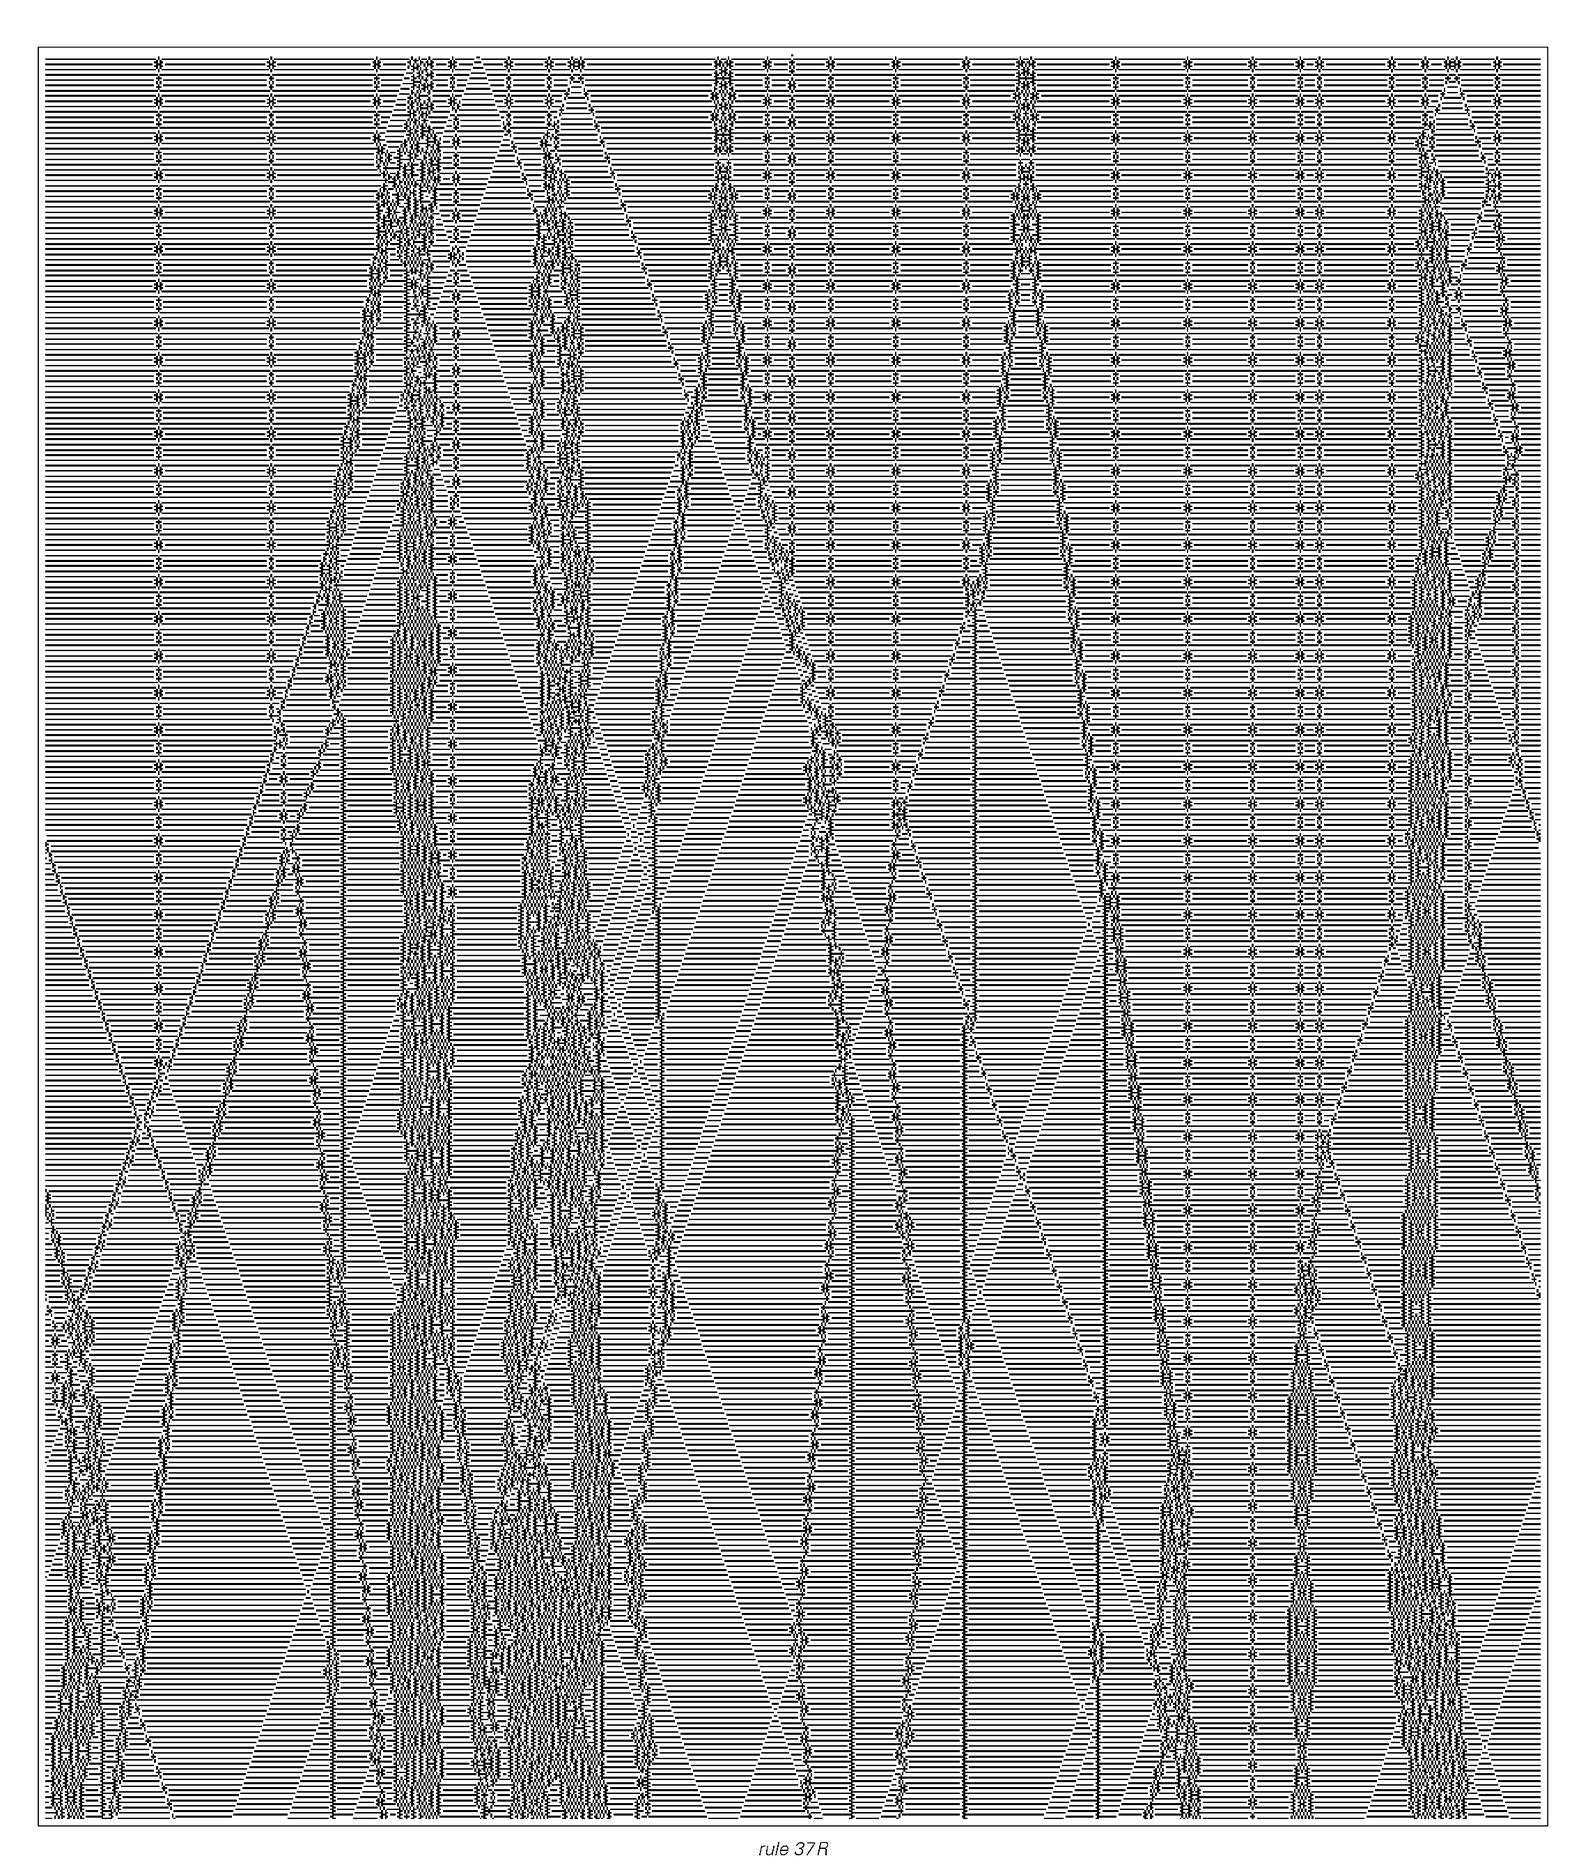 Reversible cellular automaton whose evolution supports localized structures